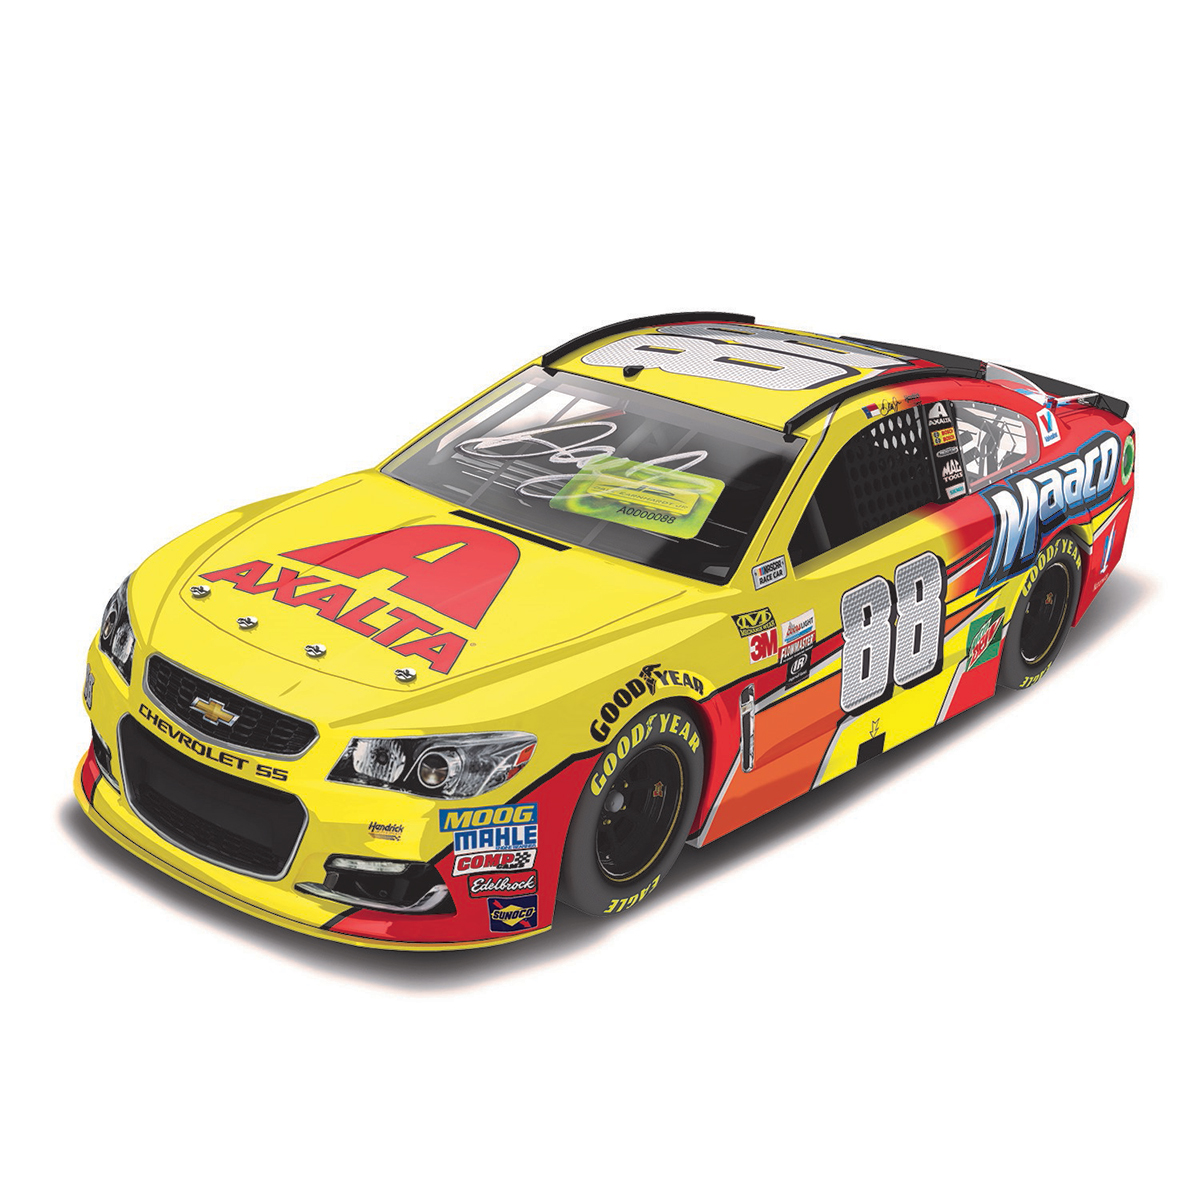 AUTOGRAPHED Dale Earnhardt, Jr. 2017 NASCAR Cup Series No. 88 All-Star Axalta Maaco 1:24 Die-Cast